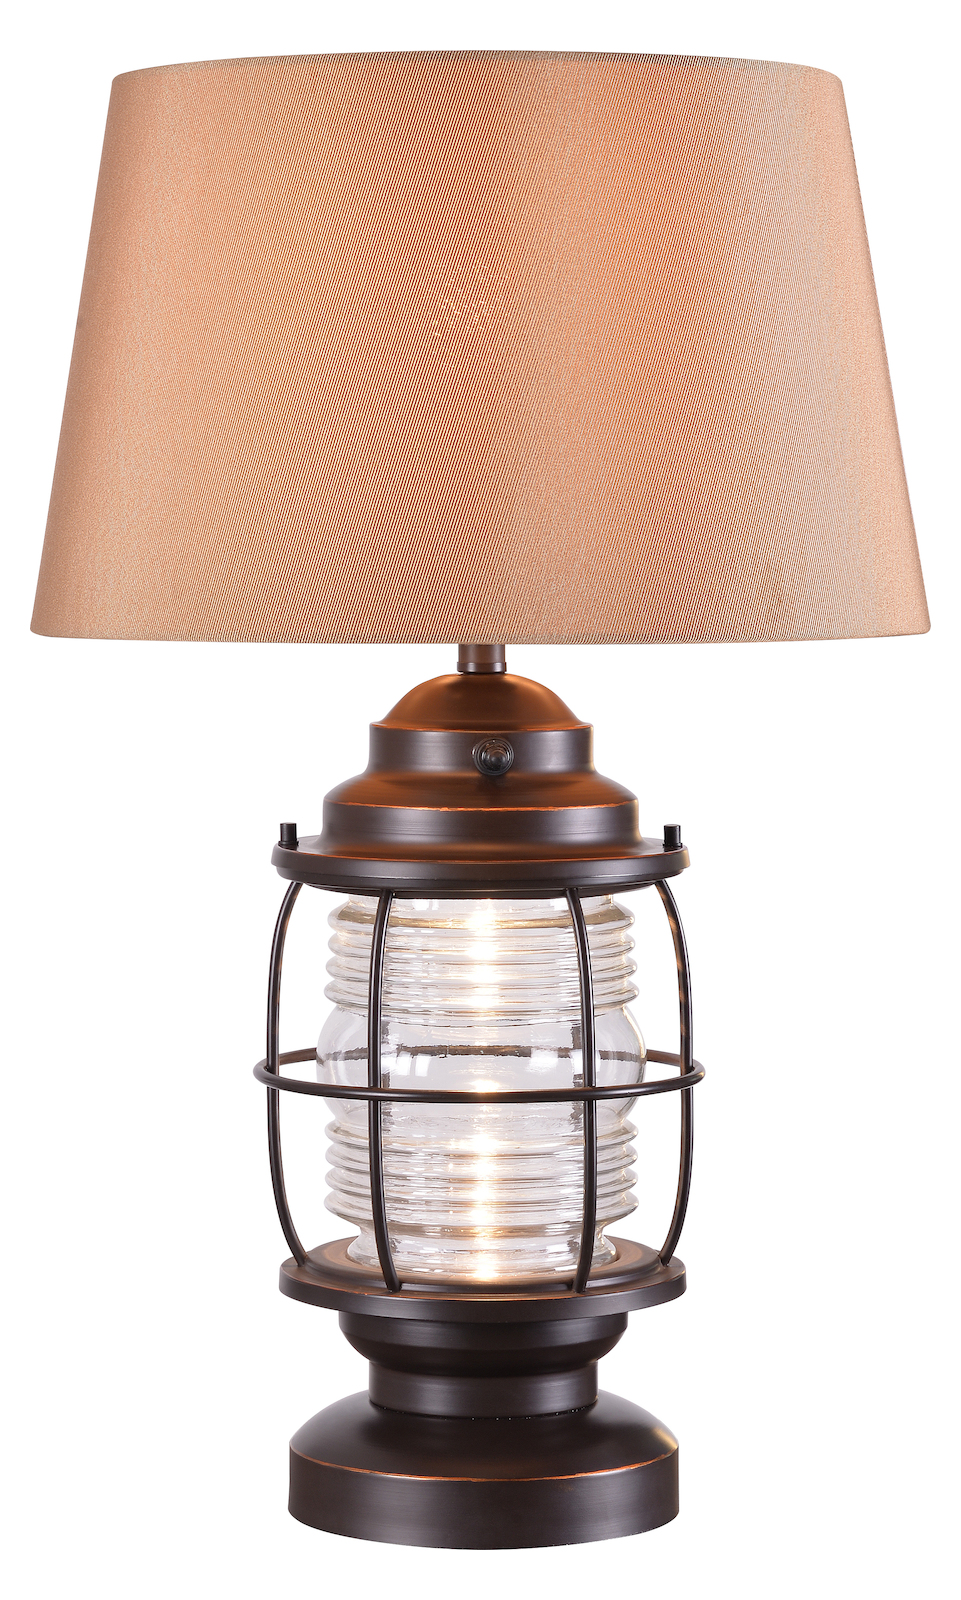 Kenroy Home Outdoor Table Lamp 35227orb